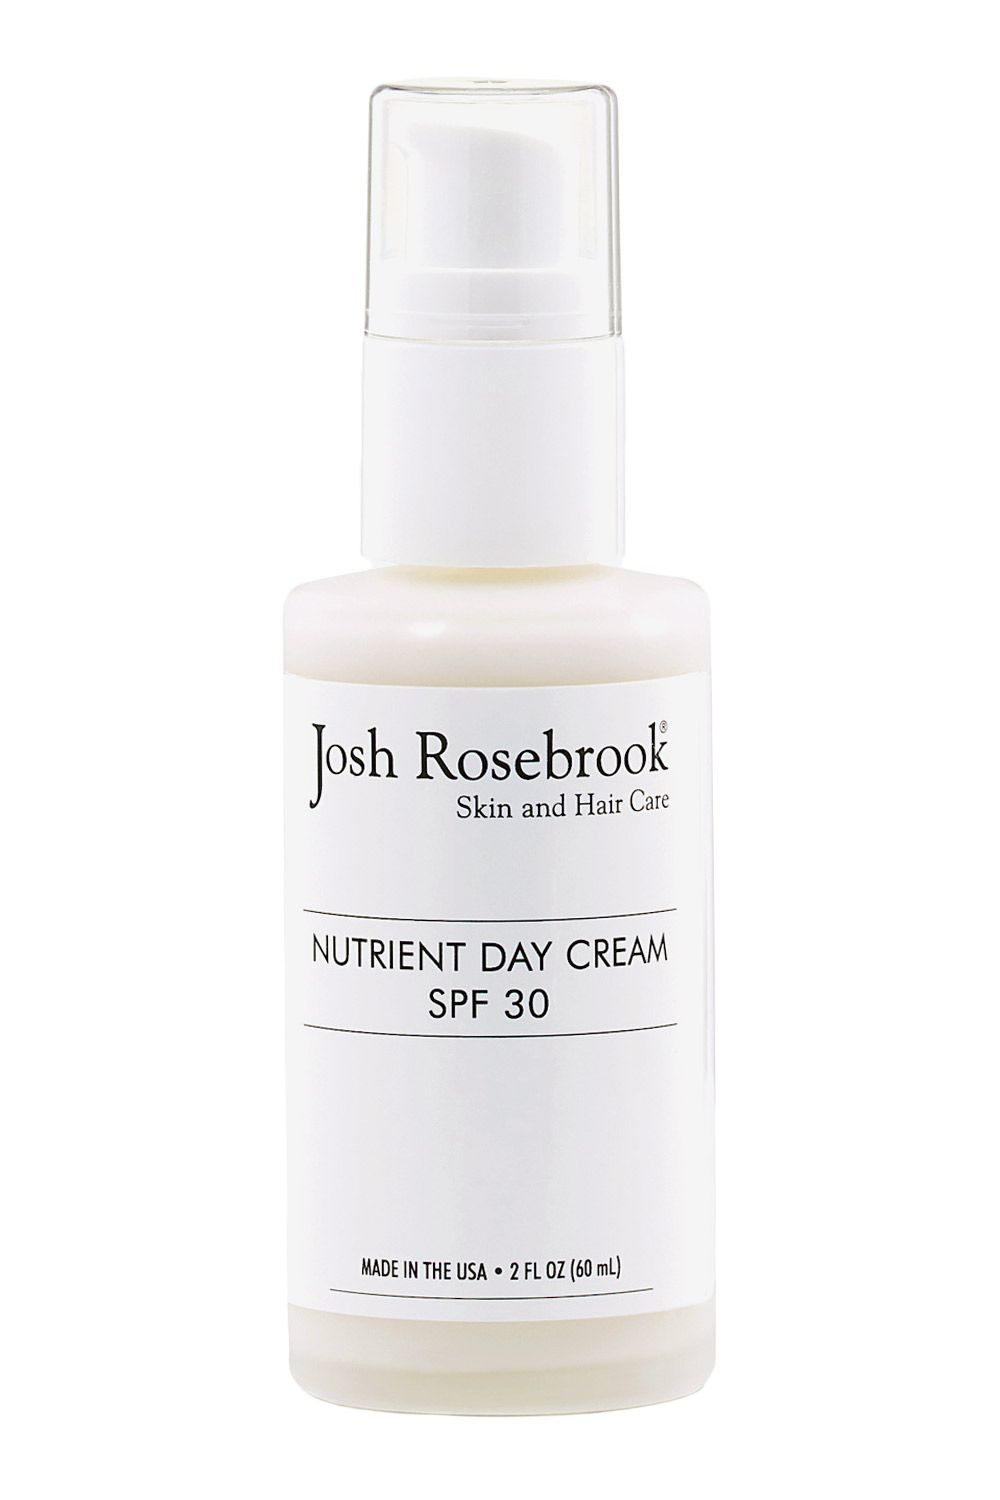 "<p><strong>Josh Rosebrook Nutrient Day Cream SPF 30</strong> is a natural blend that's formulated with tiny particles of UV-blocking mineral zinc<span class=""redactor-invisible-space"">, and a bevy of organic oils and botanicals. Bonus: It<span class=""redactor-invisible-space""> infuses skin with antioxidants and calming ingredients<span class=""redactor-invisible-space"">, and won't leave a telltale white ""ghosting"" effect behind. </span></span></span><em>$85, <a href=""http://joshrosebrook.com/products/nutrient-day-cream-with-spf-30-non-nano-zinc-oxide?variant=733457109"" target=""_blank"">joshrosebrook.com</a></em></p>"